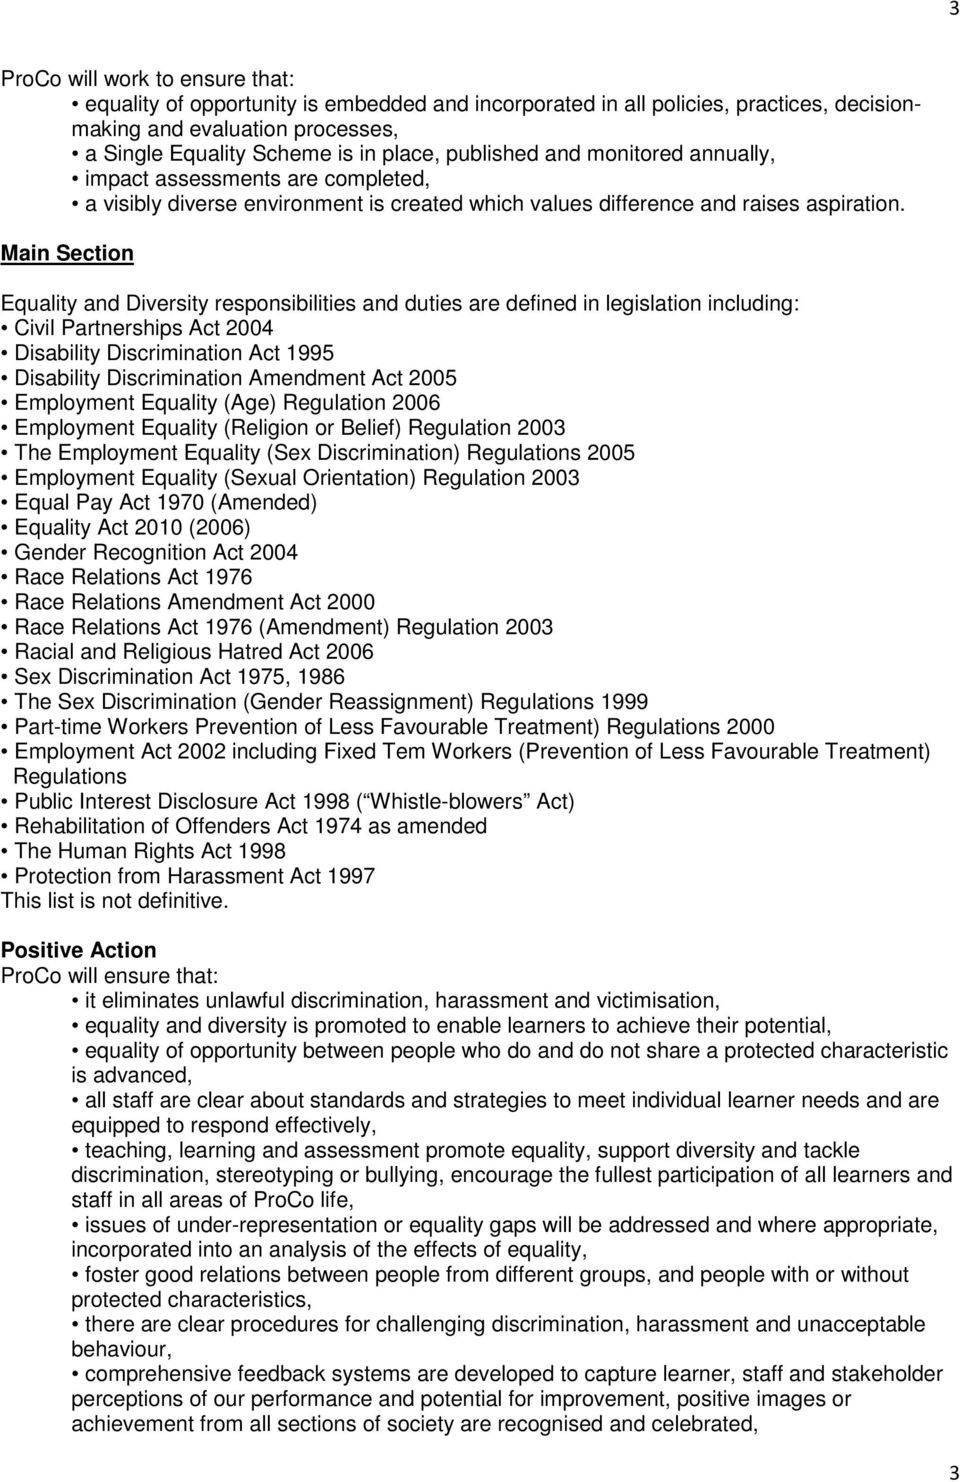 Sex discrimination act amendment 2003